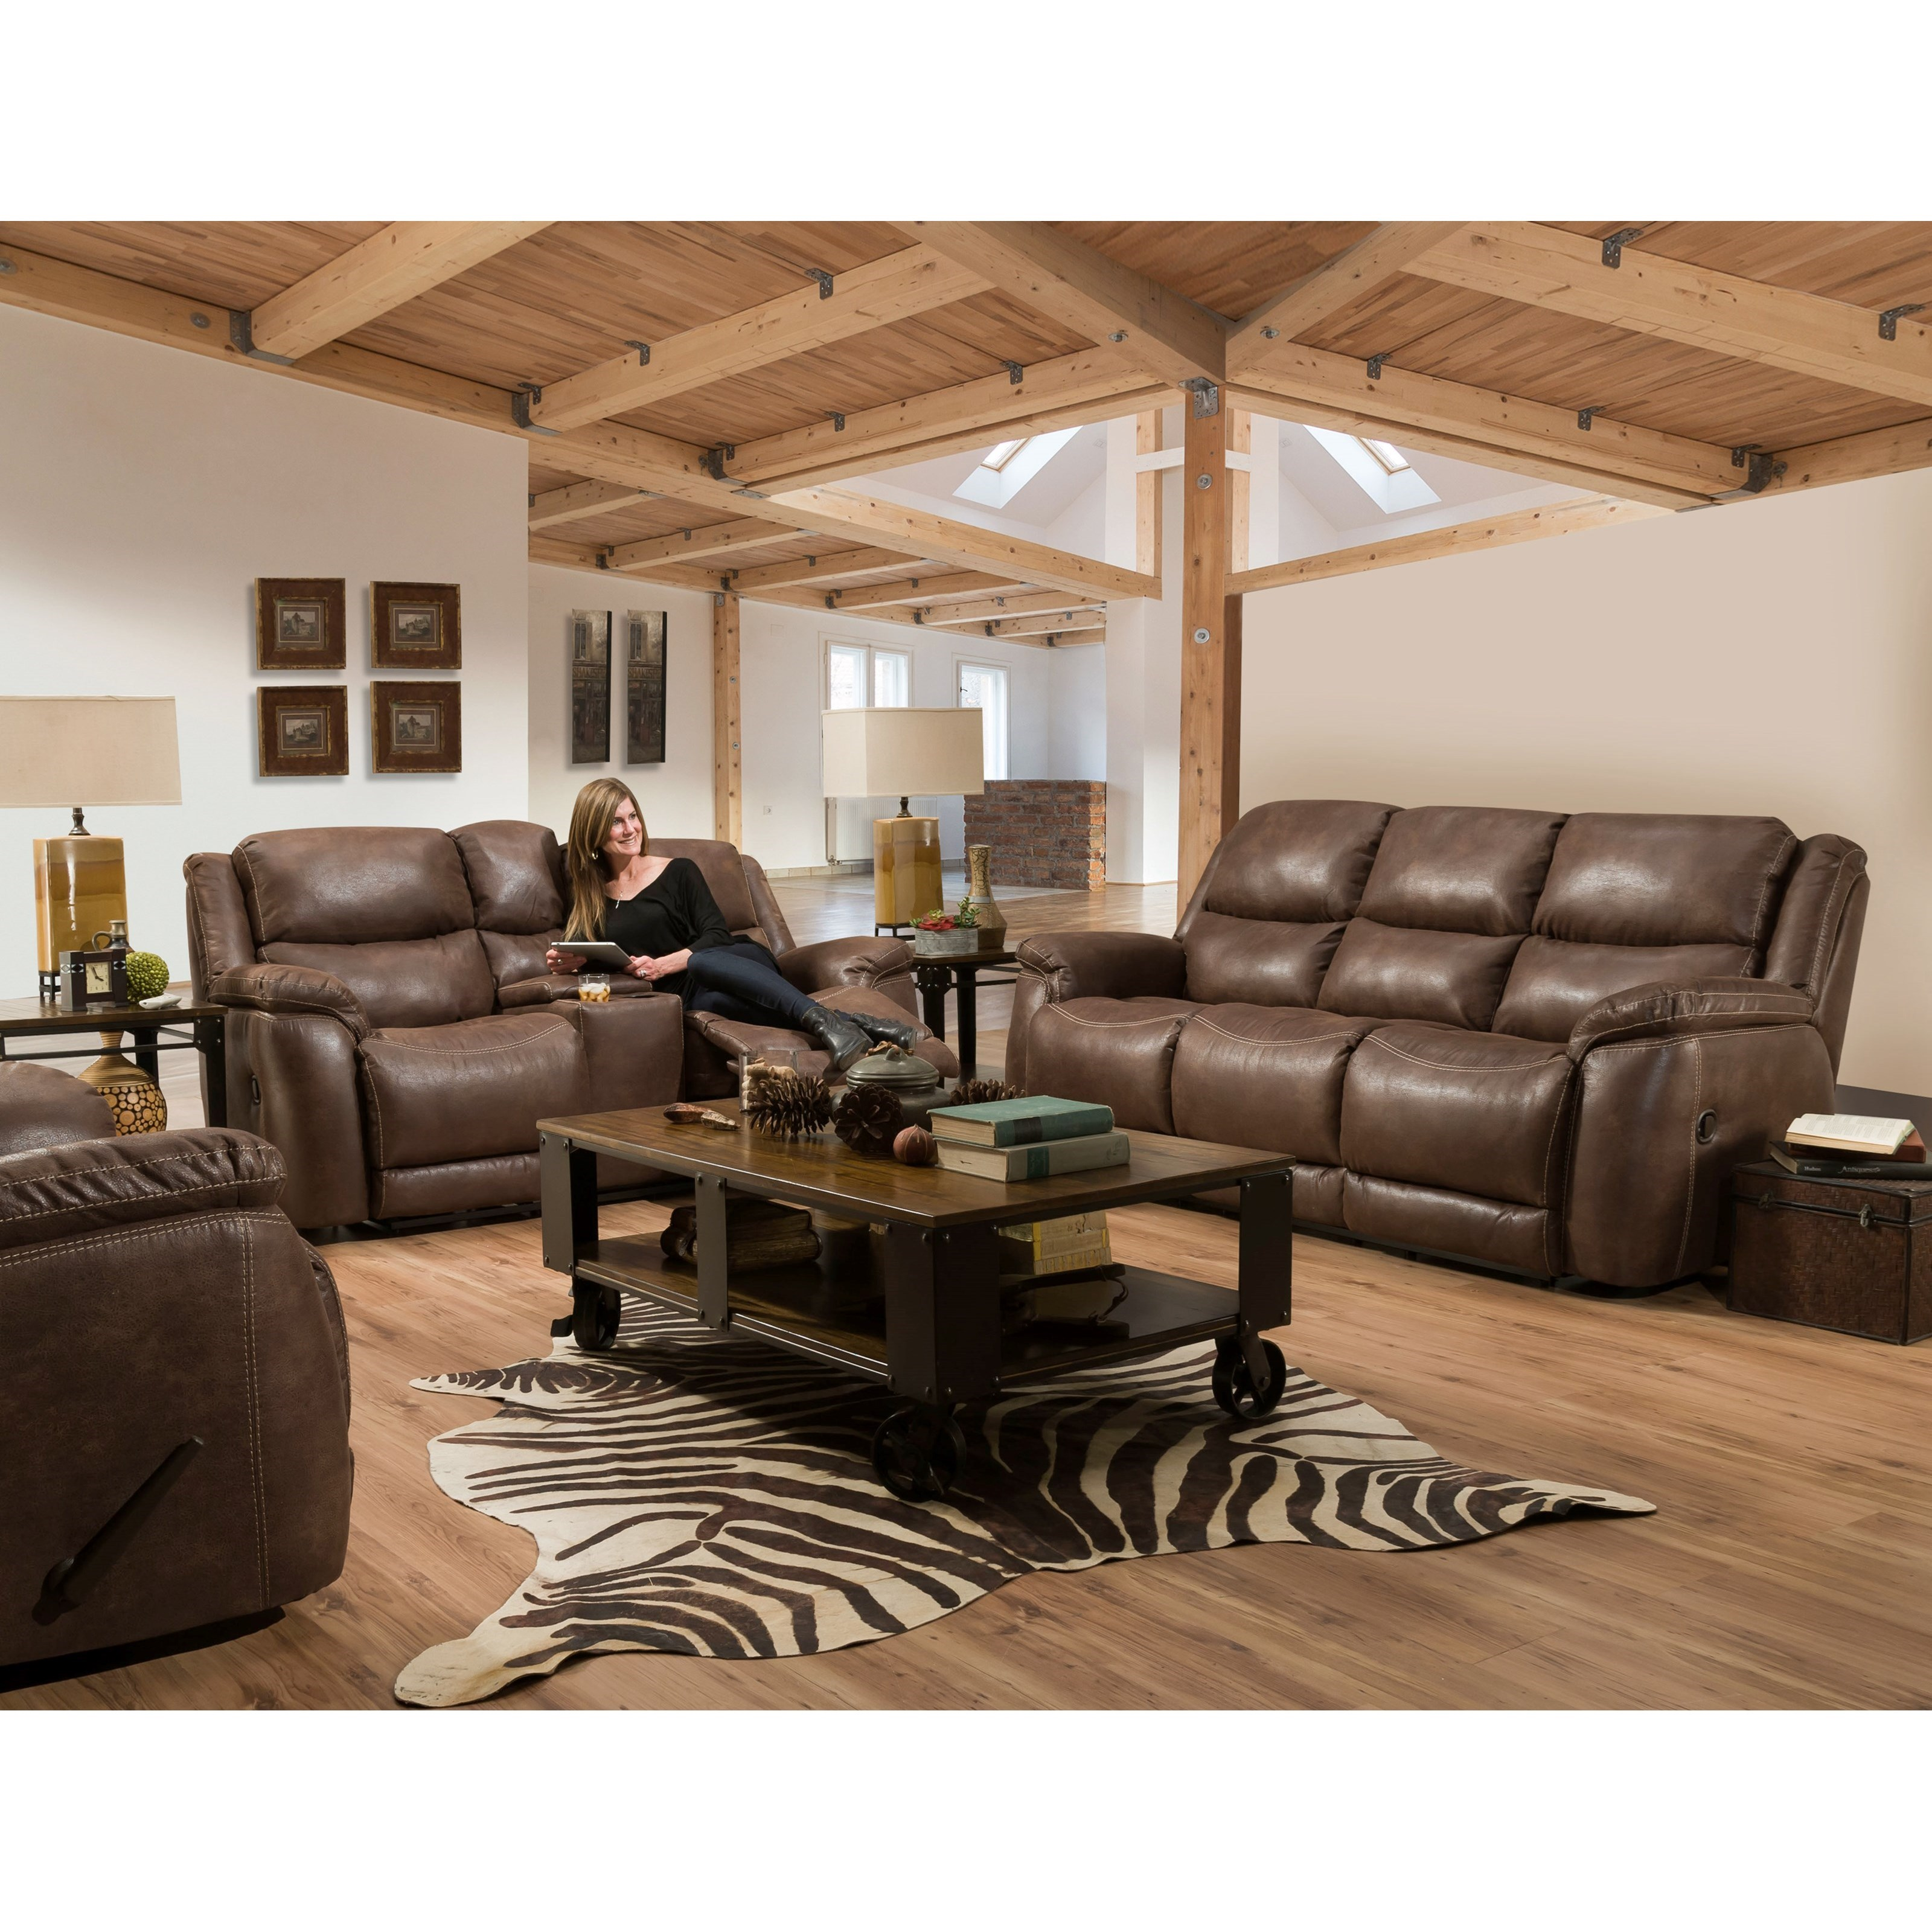 Riatta Reclining Living Room Group by HomeStretch at Johnny Janosik